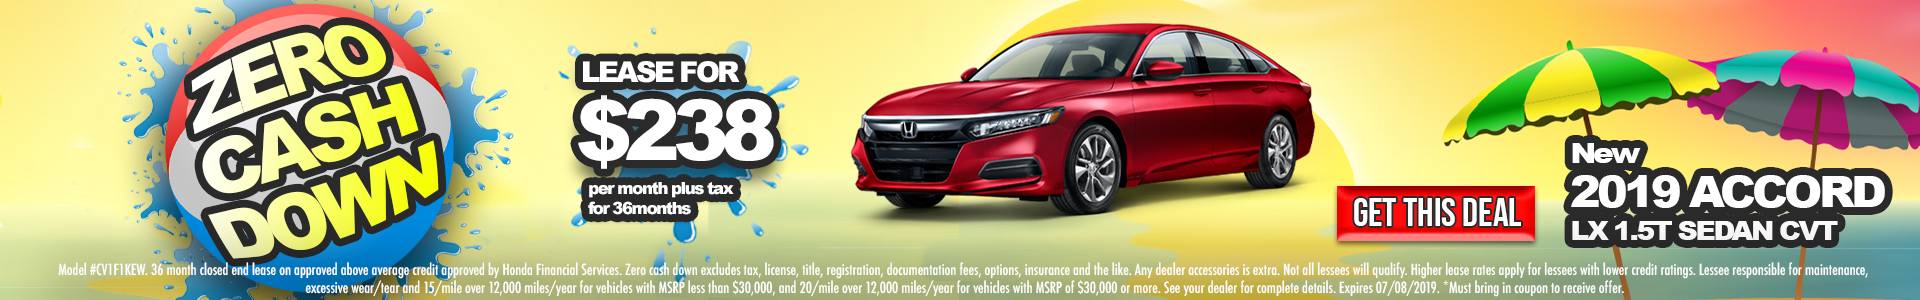 Honda Accord $238 Lease